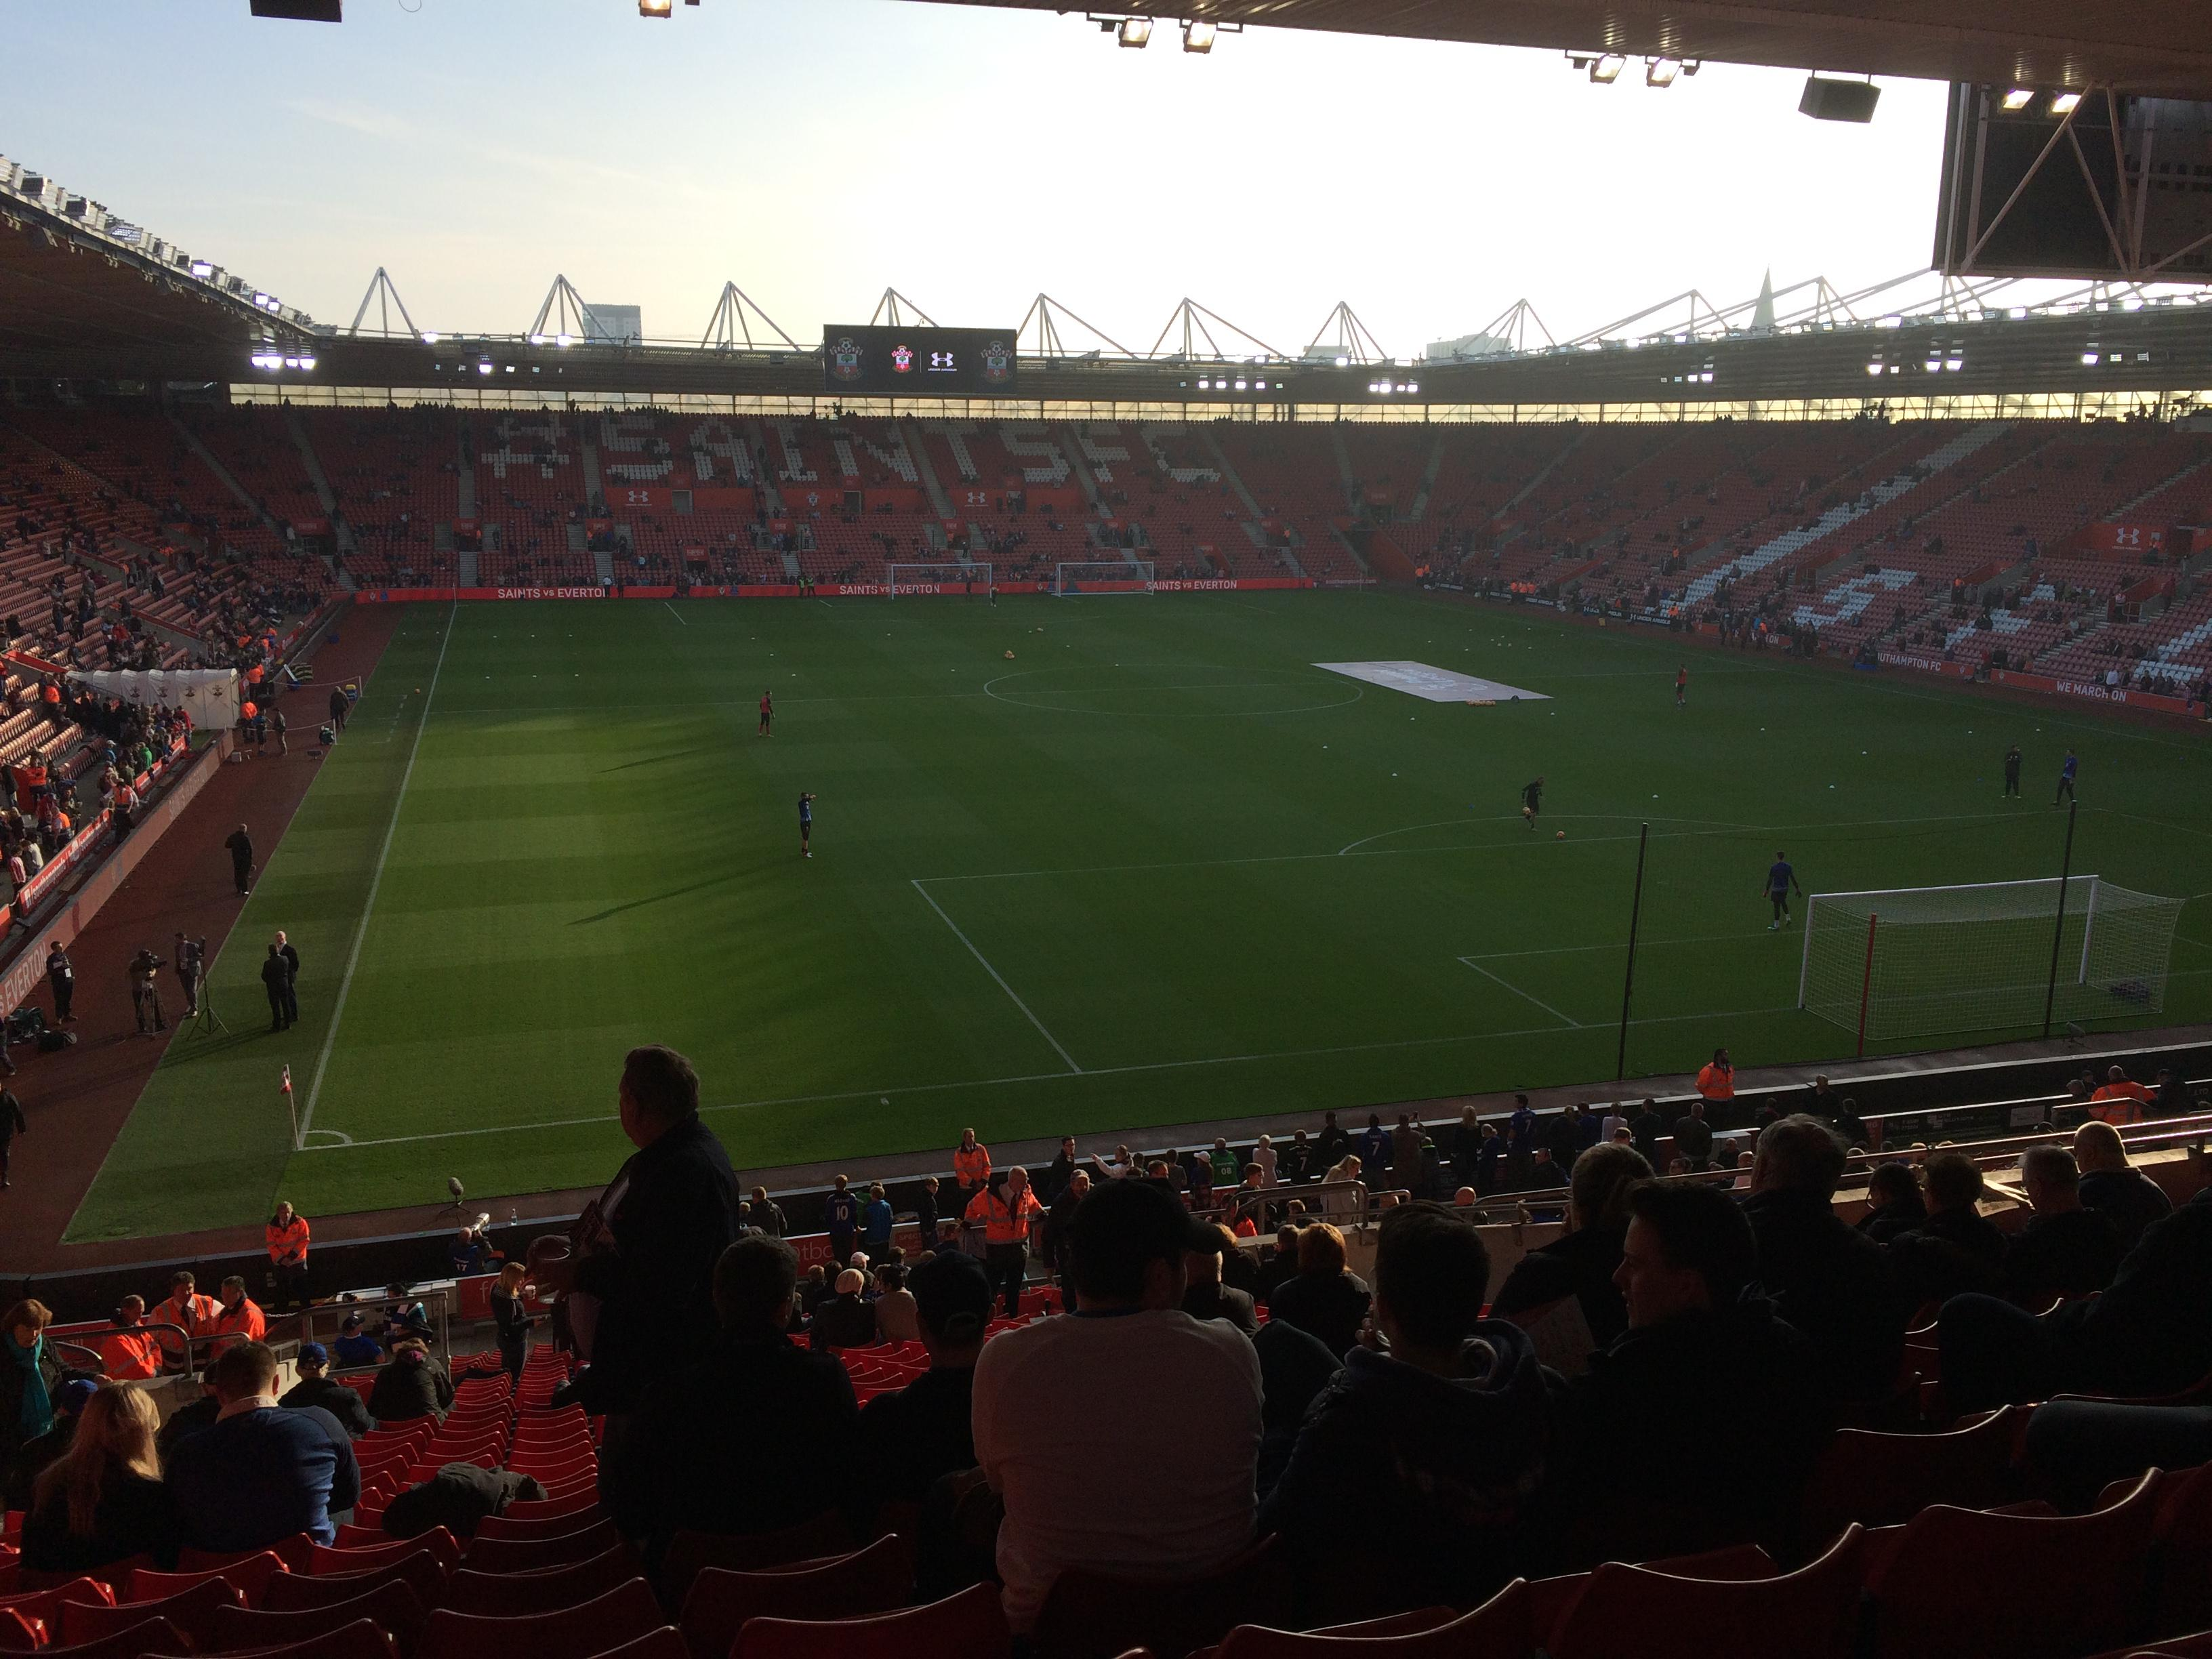 St Mary's Stadium Section 45 Row KK Seat 1176